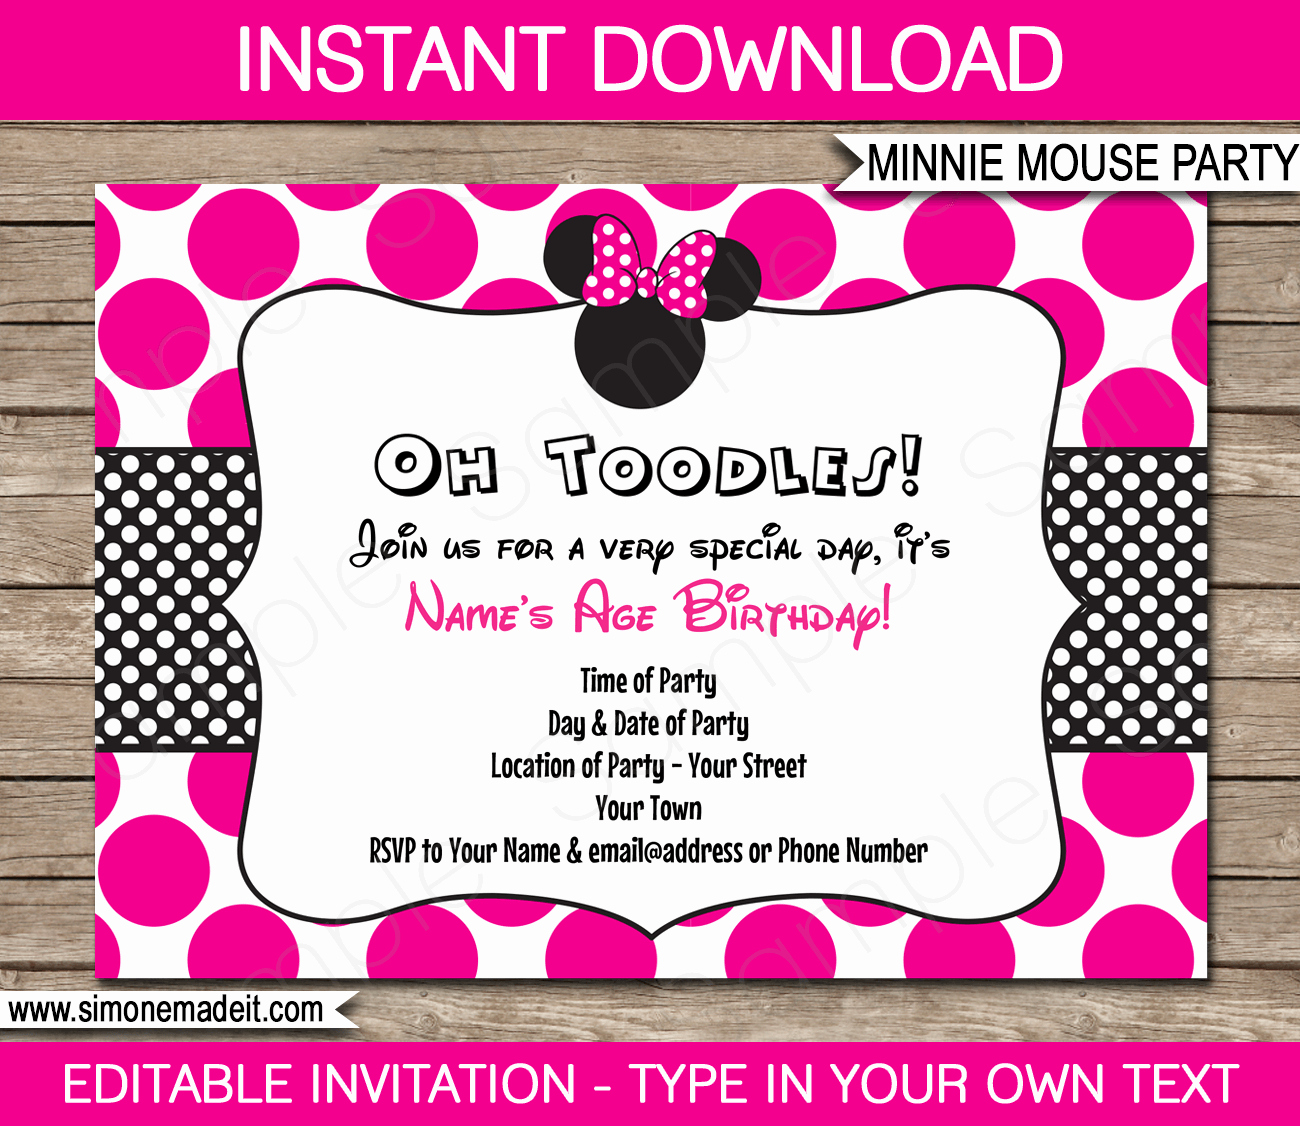 Minnie Mouse Party Invitations Template